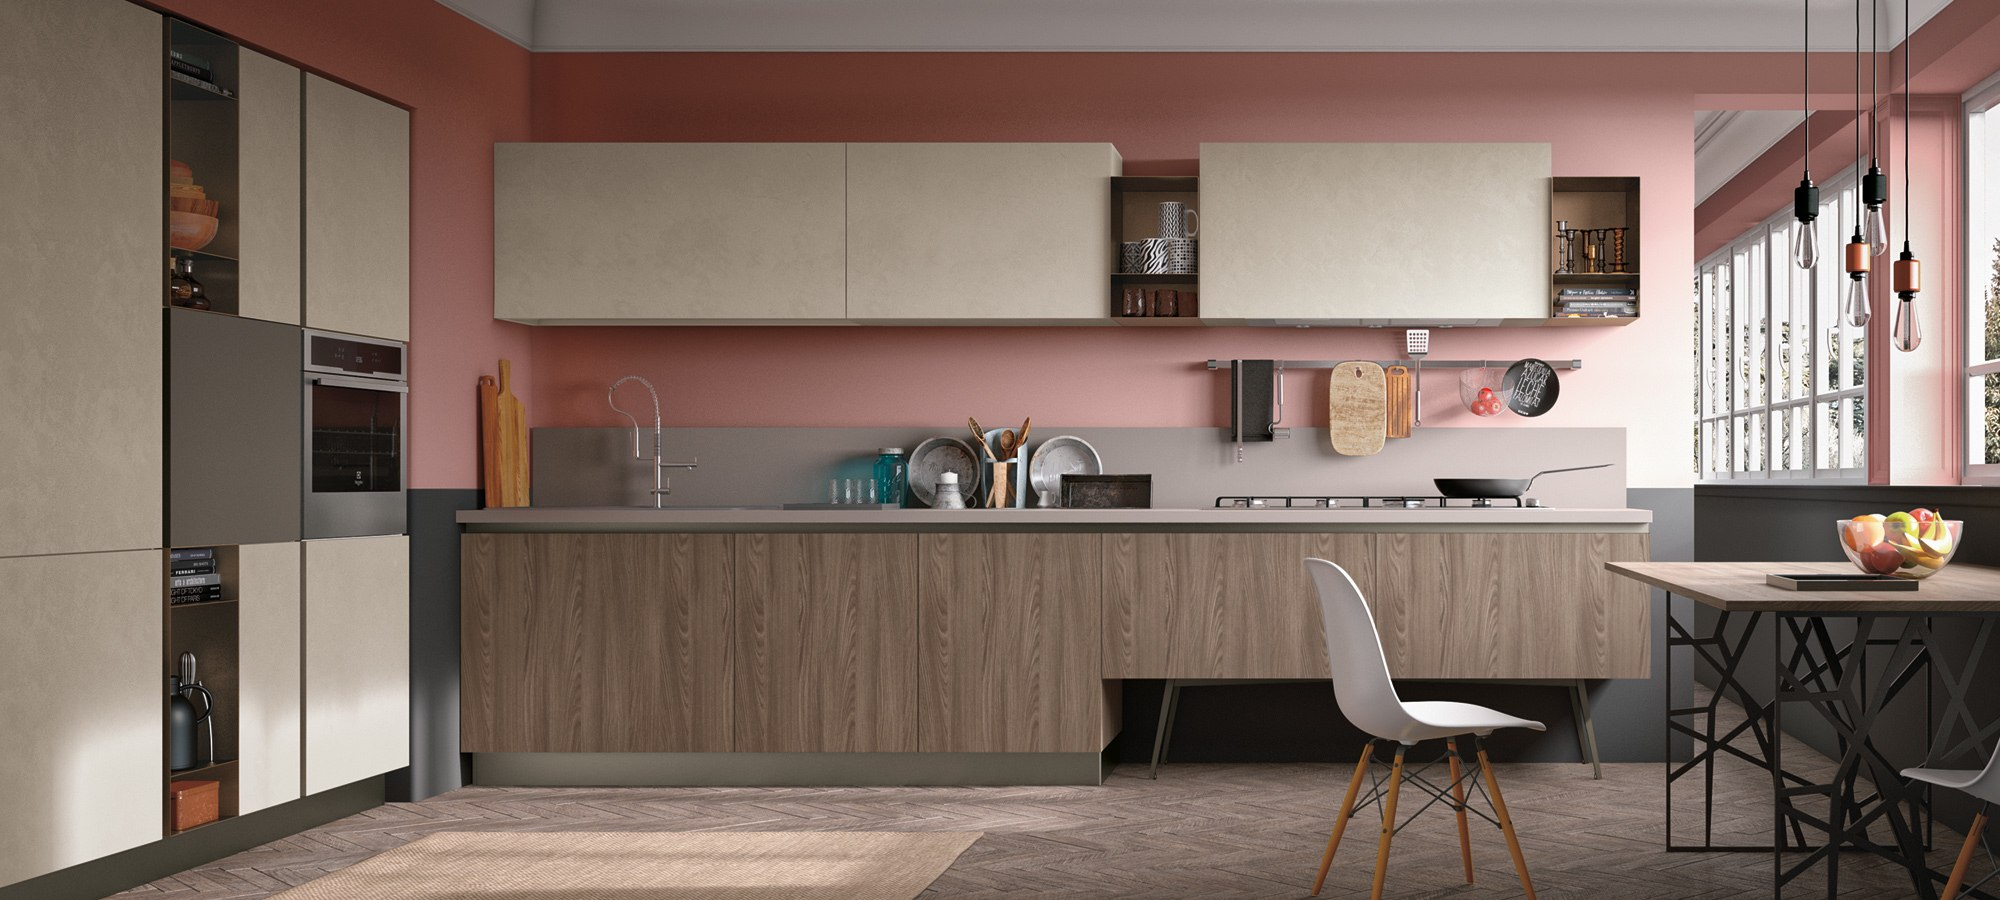 Stosa Cucine Modern Kitchen Cabinetry - Infinity Collection - V.K. ...